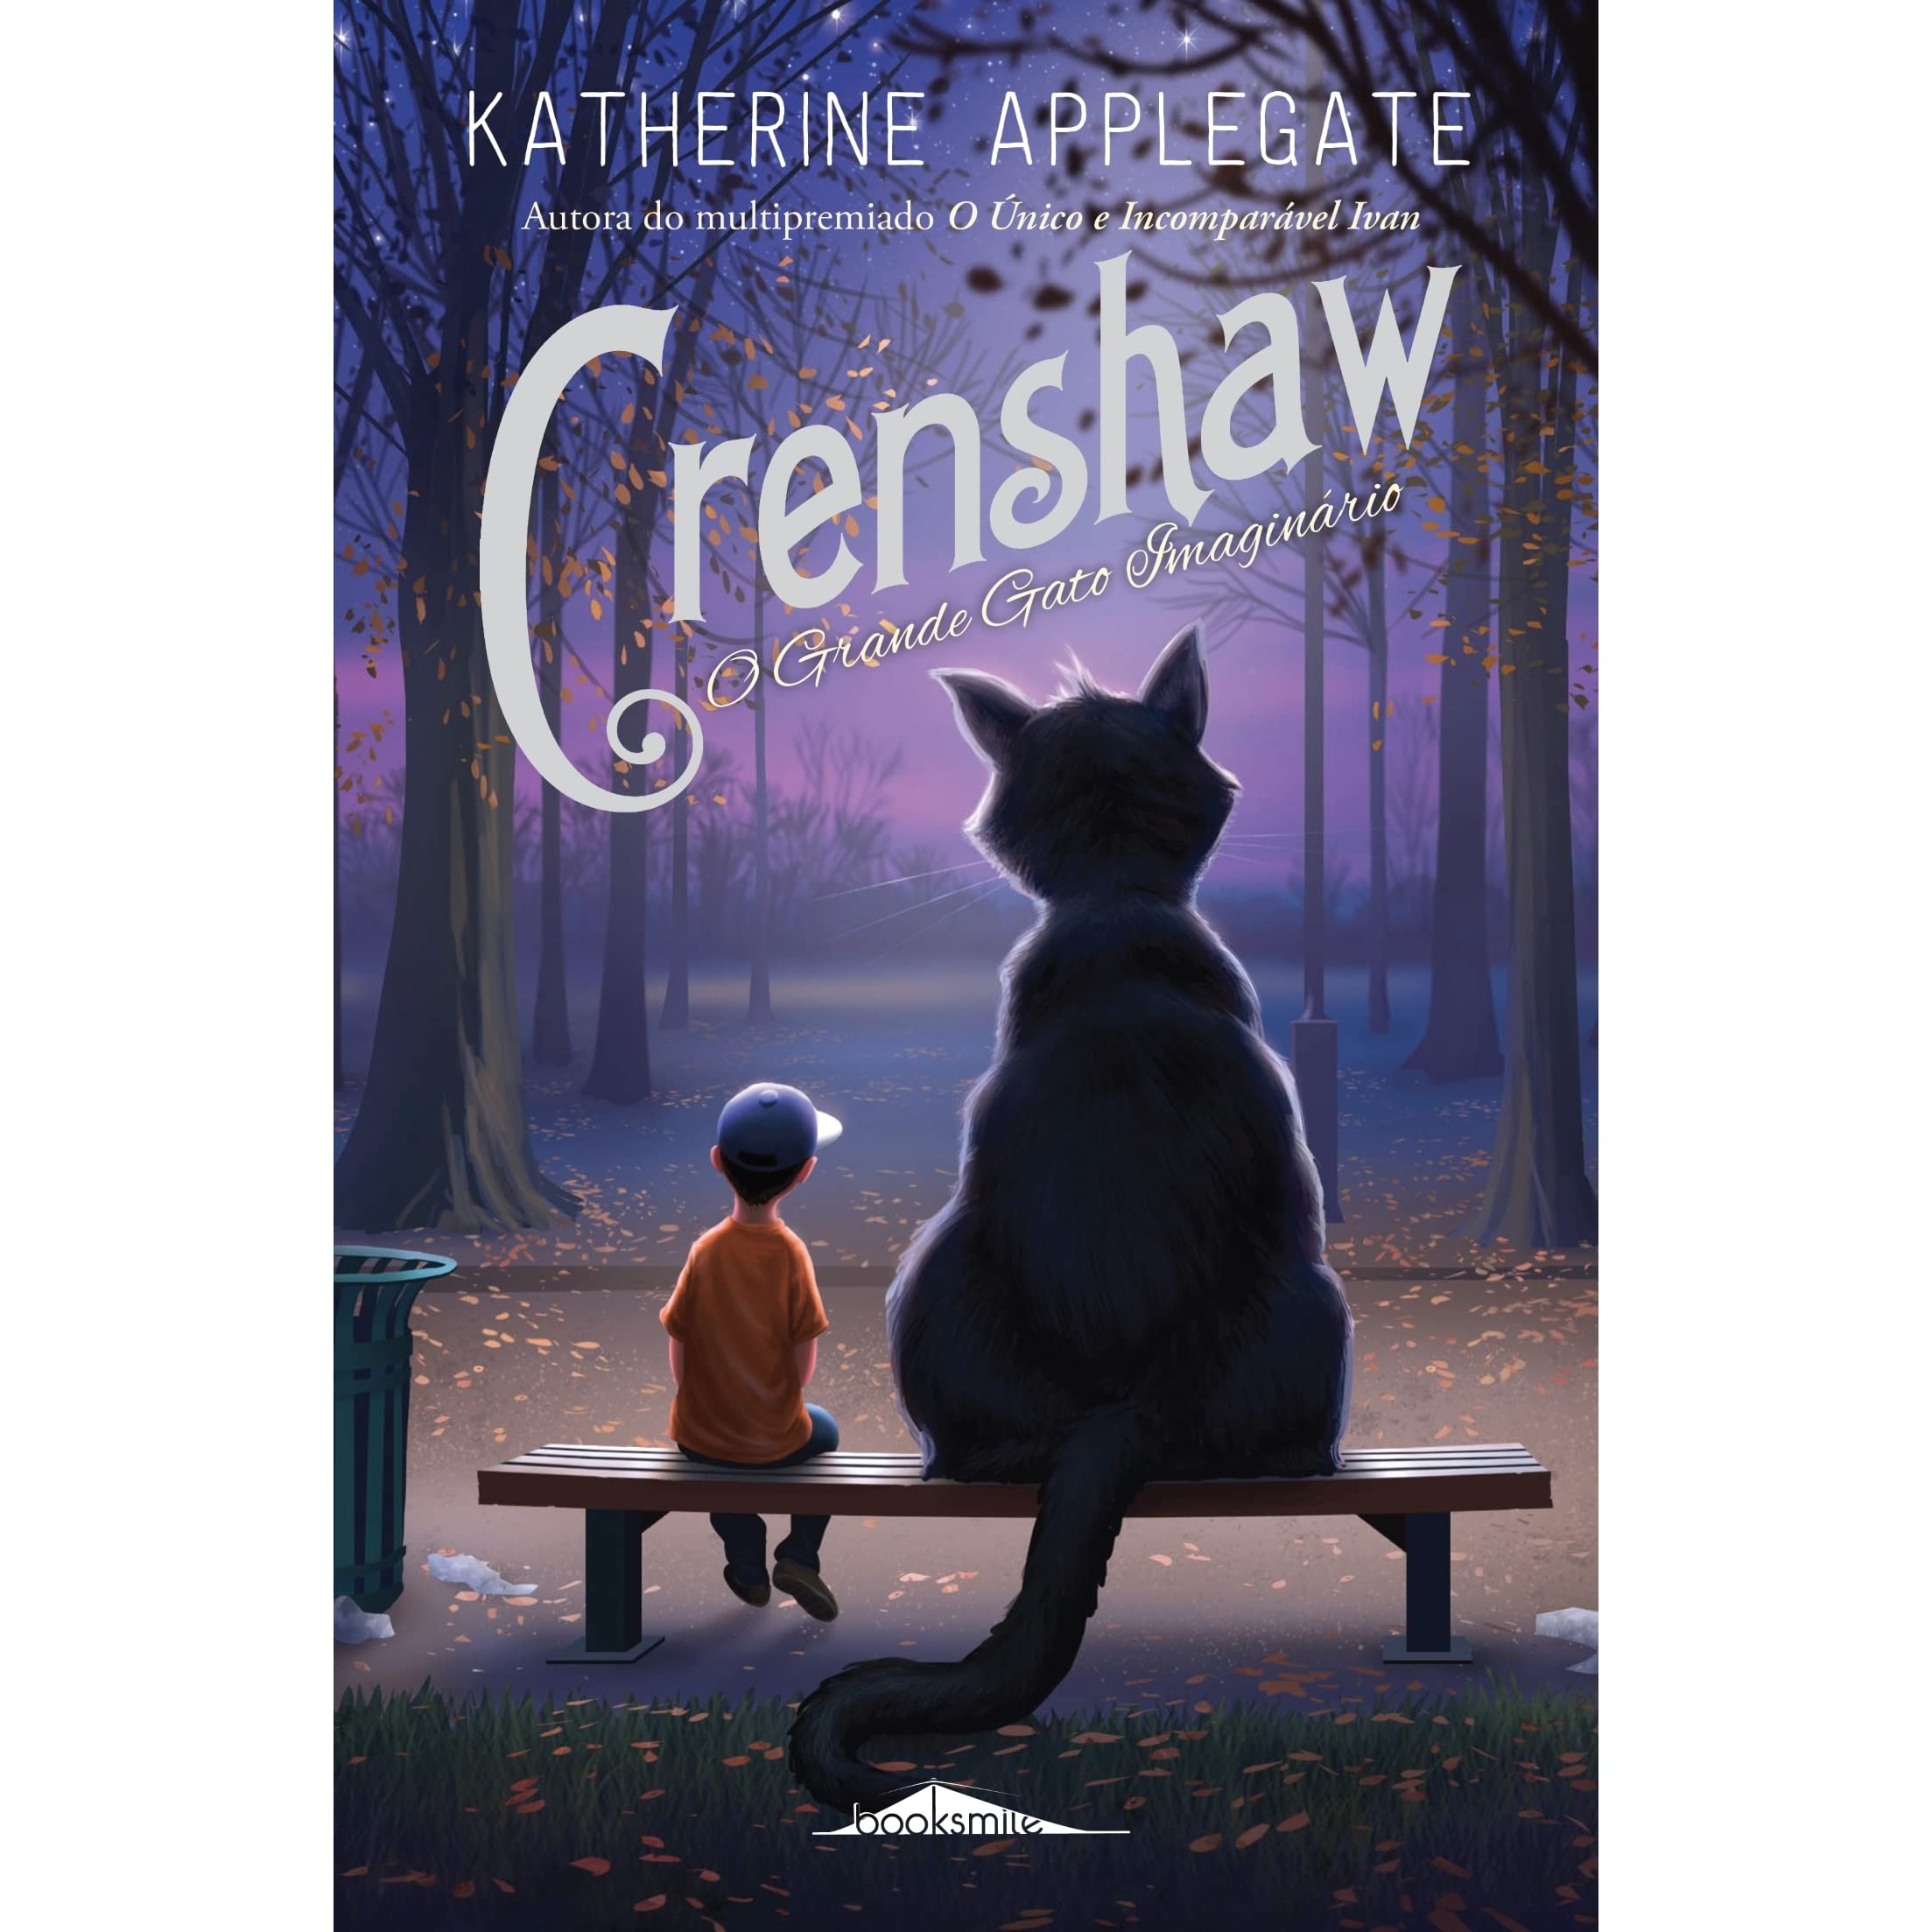 crenshaw o grande gato imagin rio by katherine applegate reviews discussion bookclubs lists. Black Bedroom Furniture Sets. Home Design Ideas